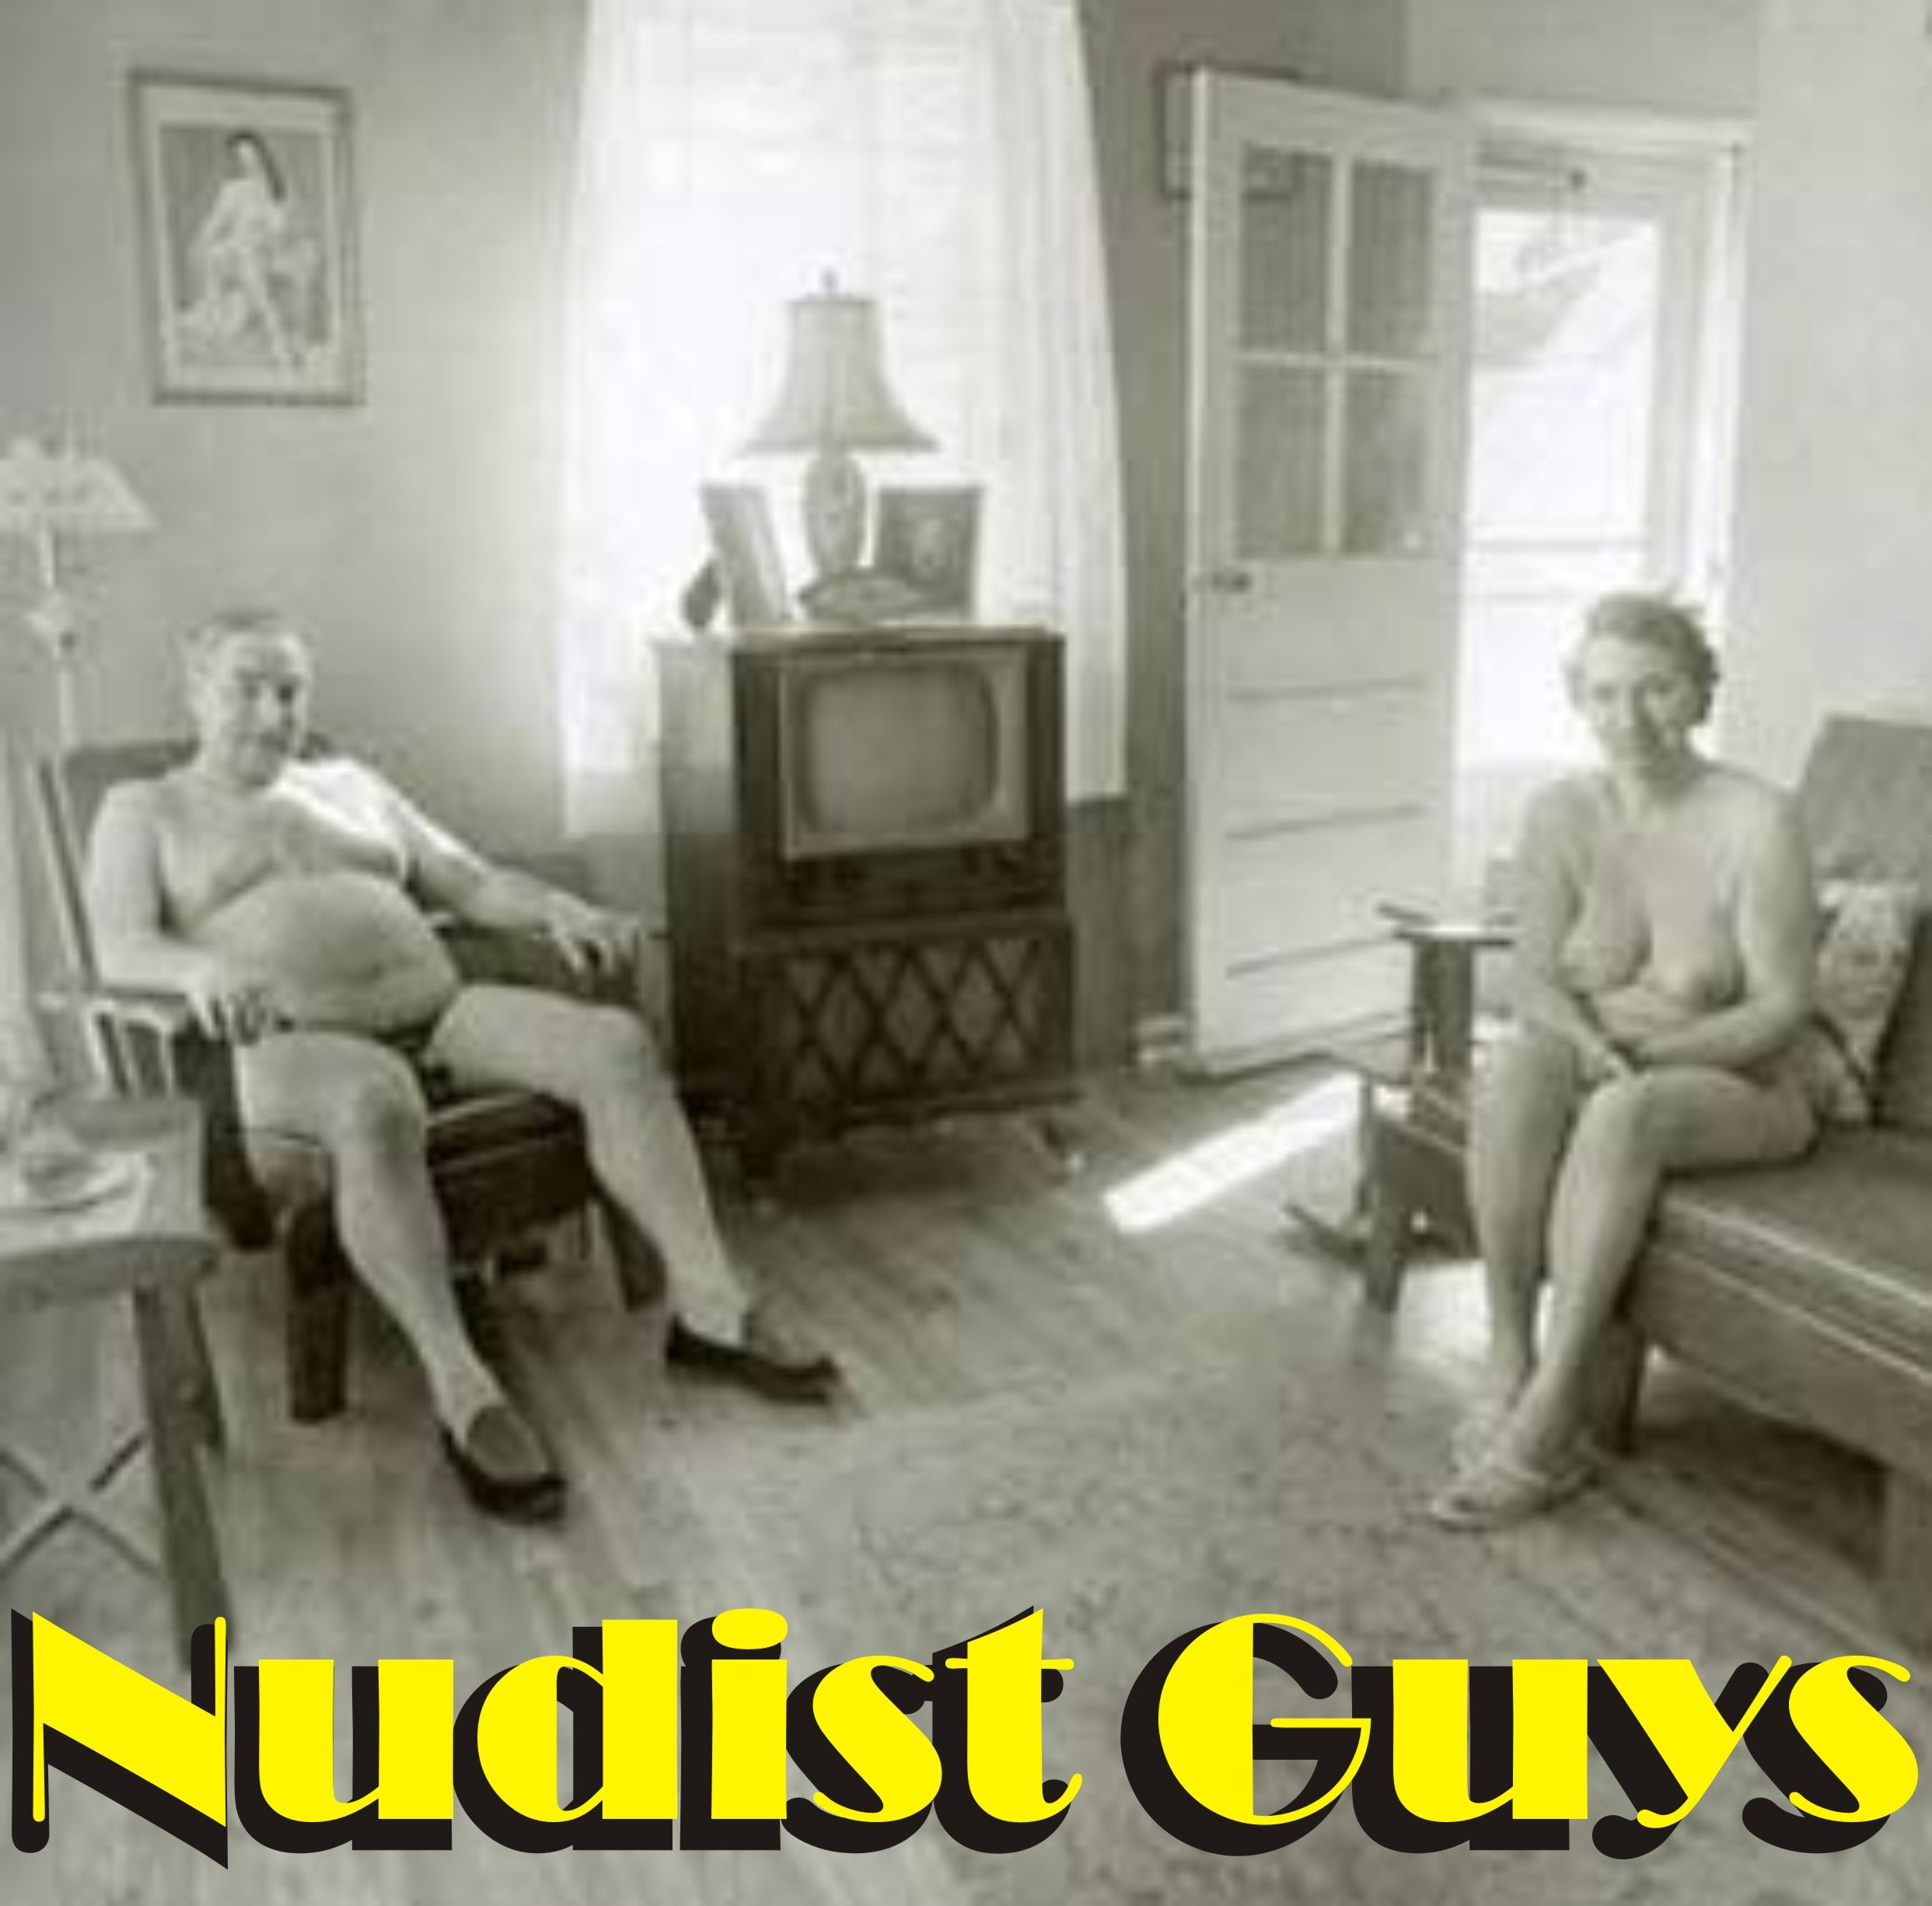 The Nudist Guys